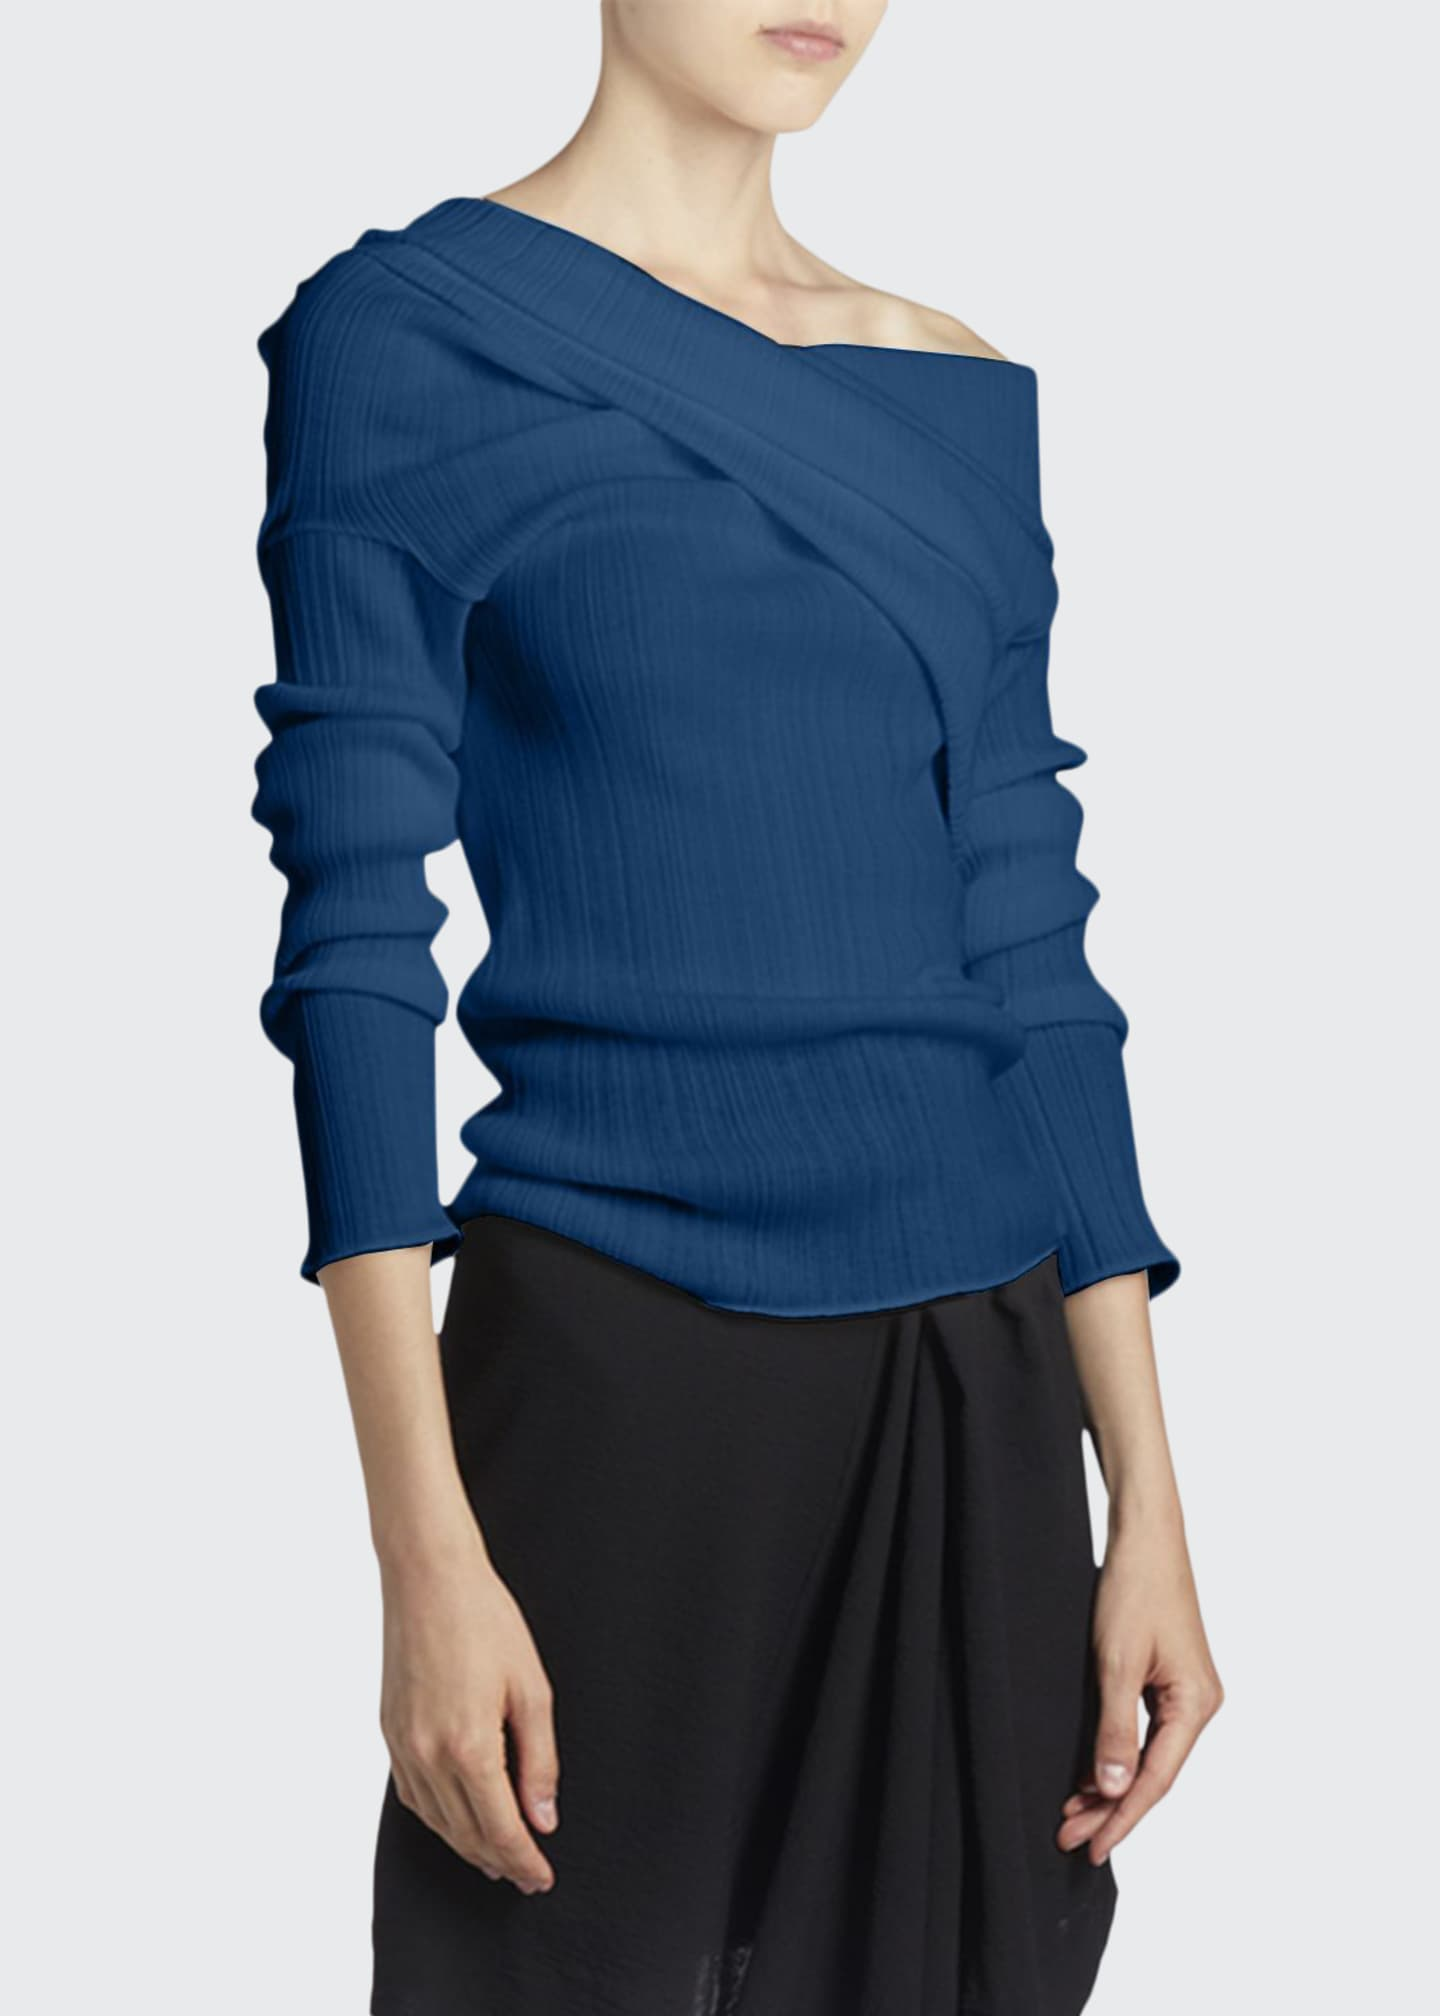 Nina Ricci One-Shoulder Knit Top